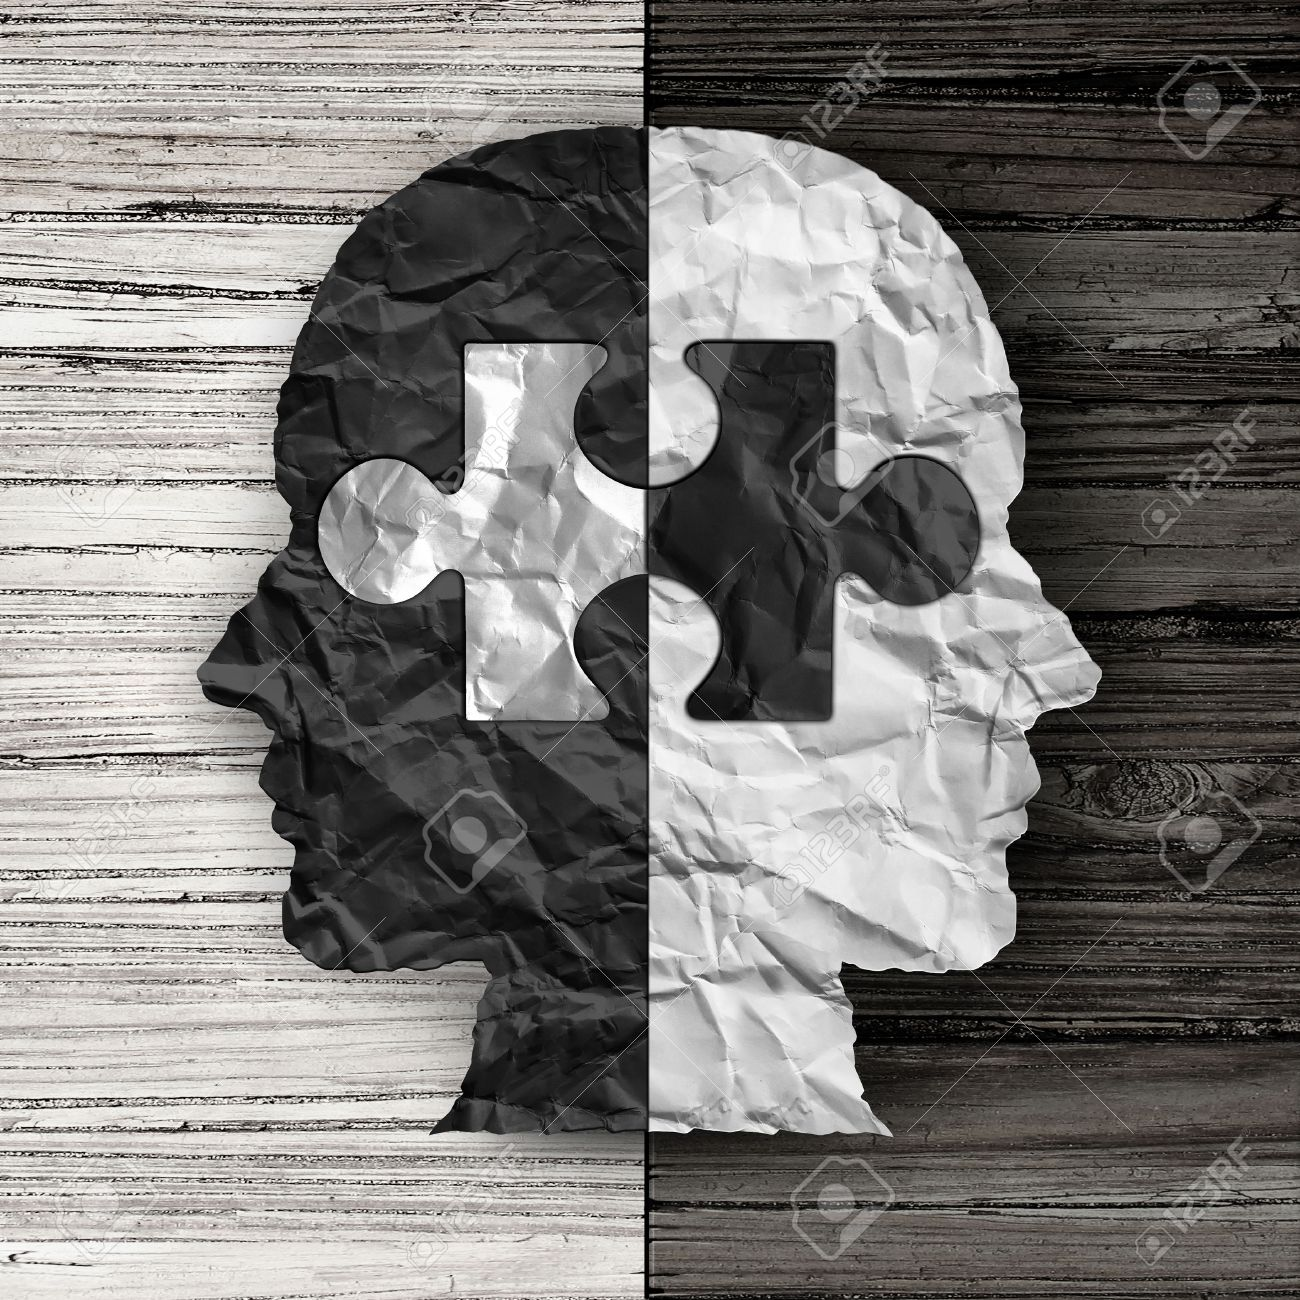 Racial ethnic social issue and equality concept or cultural justice symbol as a black and white crumpled paper shaped as a human head on old rustic wood background with a puzzle piece as a metaphor for social race issues. - 51757389